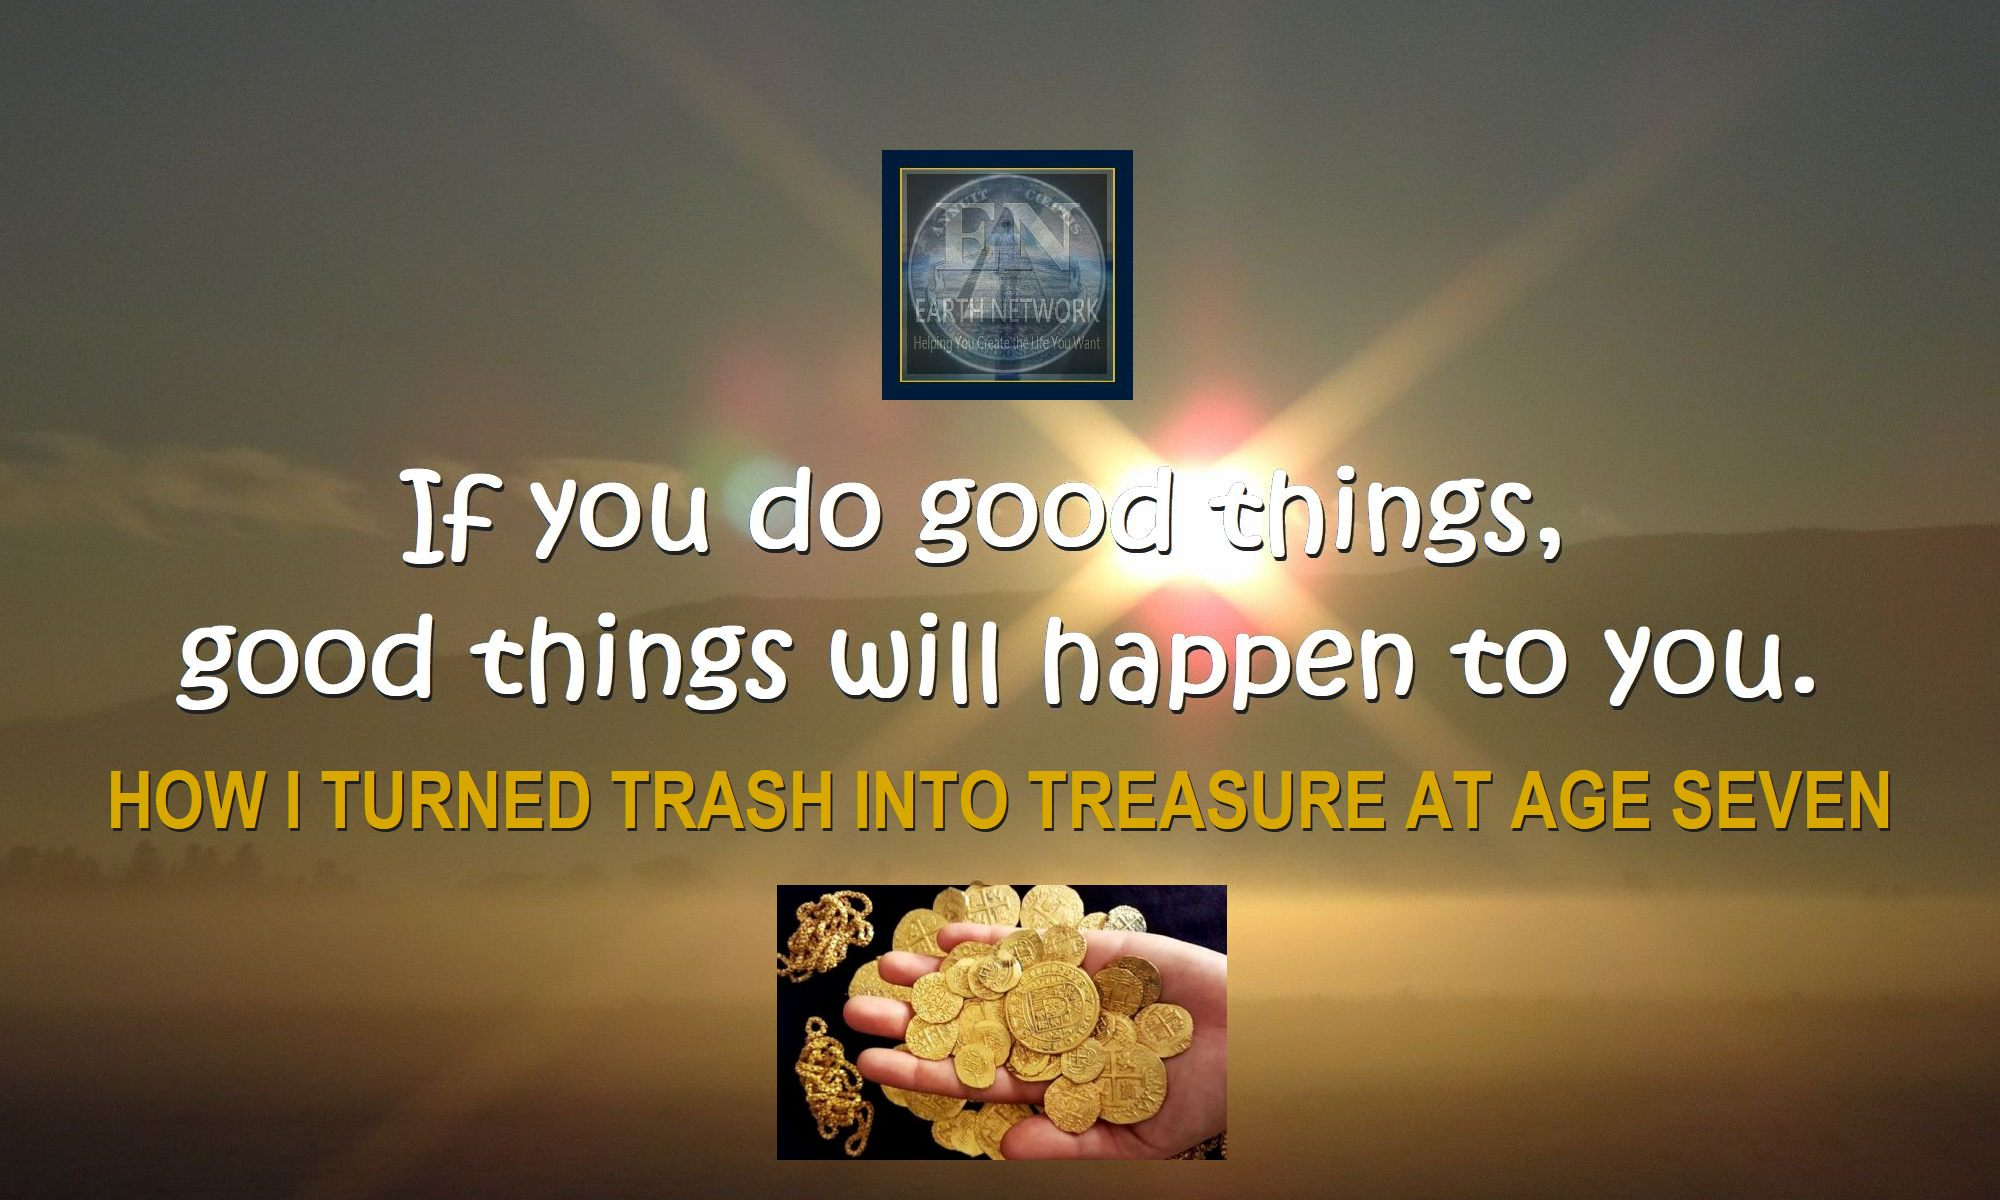 treasure-depicts-manifesting-ability-Good-create-best-future-probabilities-multidimensional